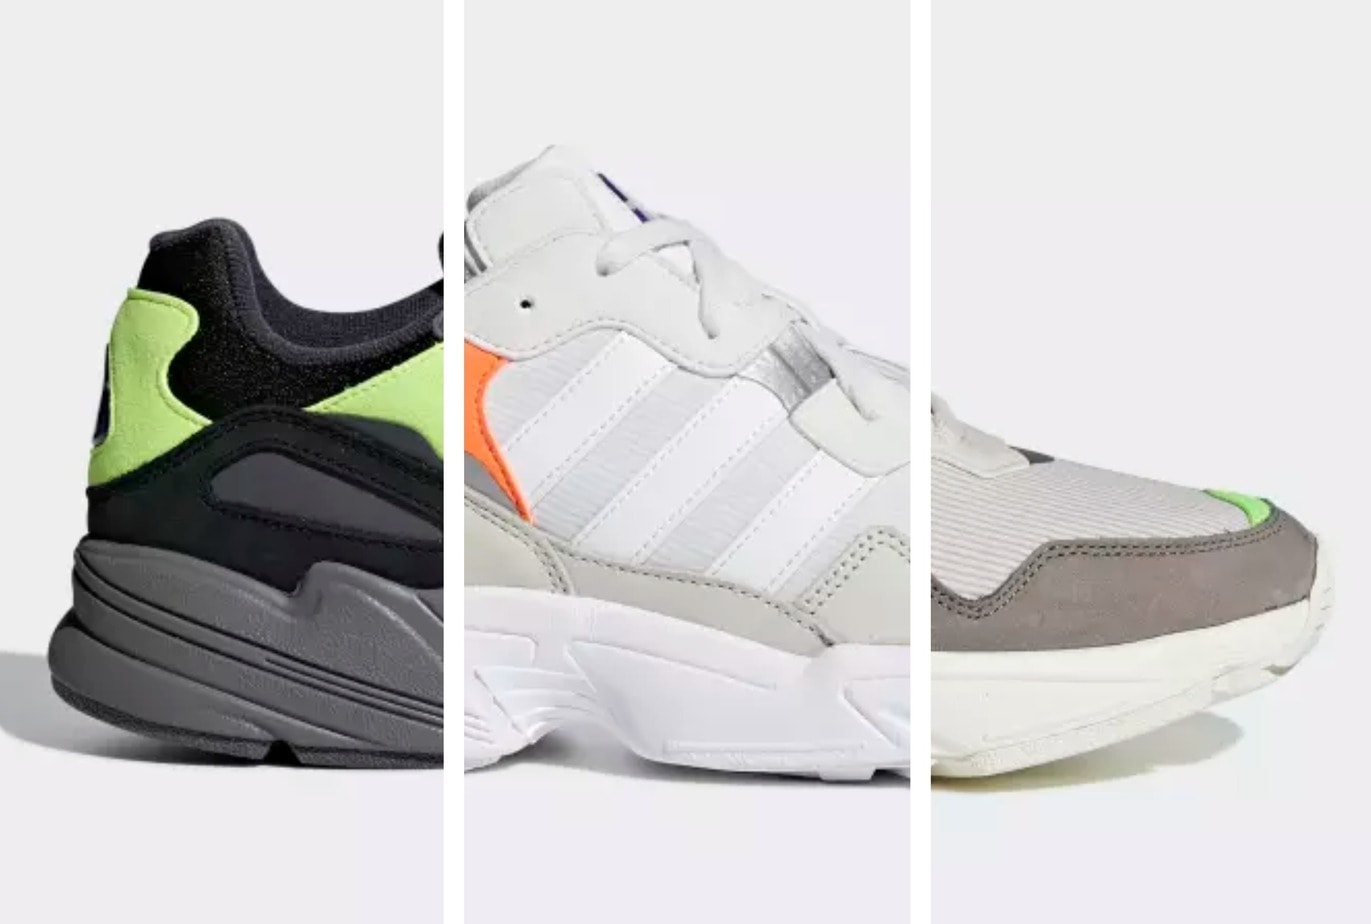 designer fashion dba21 97b46 The adidas Yung-1 has launched a slew of new silhouettes in the Originals  arsenal. The latest to enter the ring is a takedown of the original titled  the ...